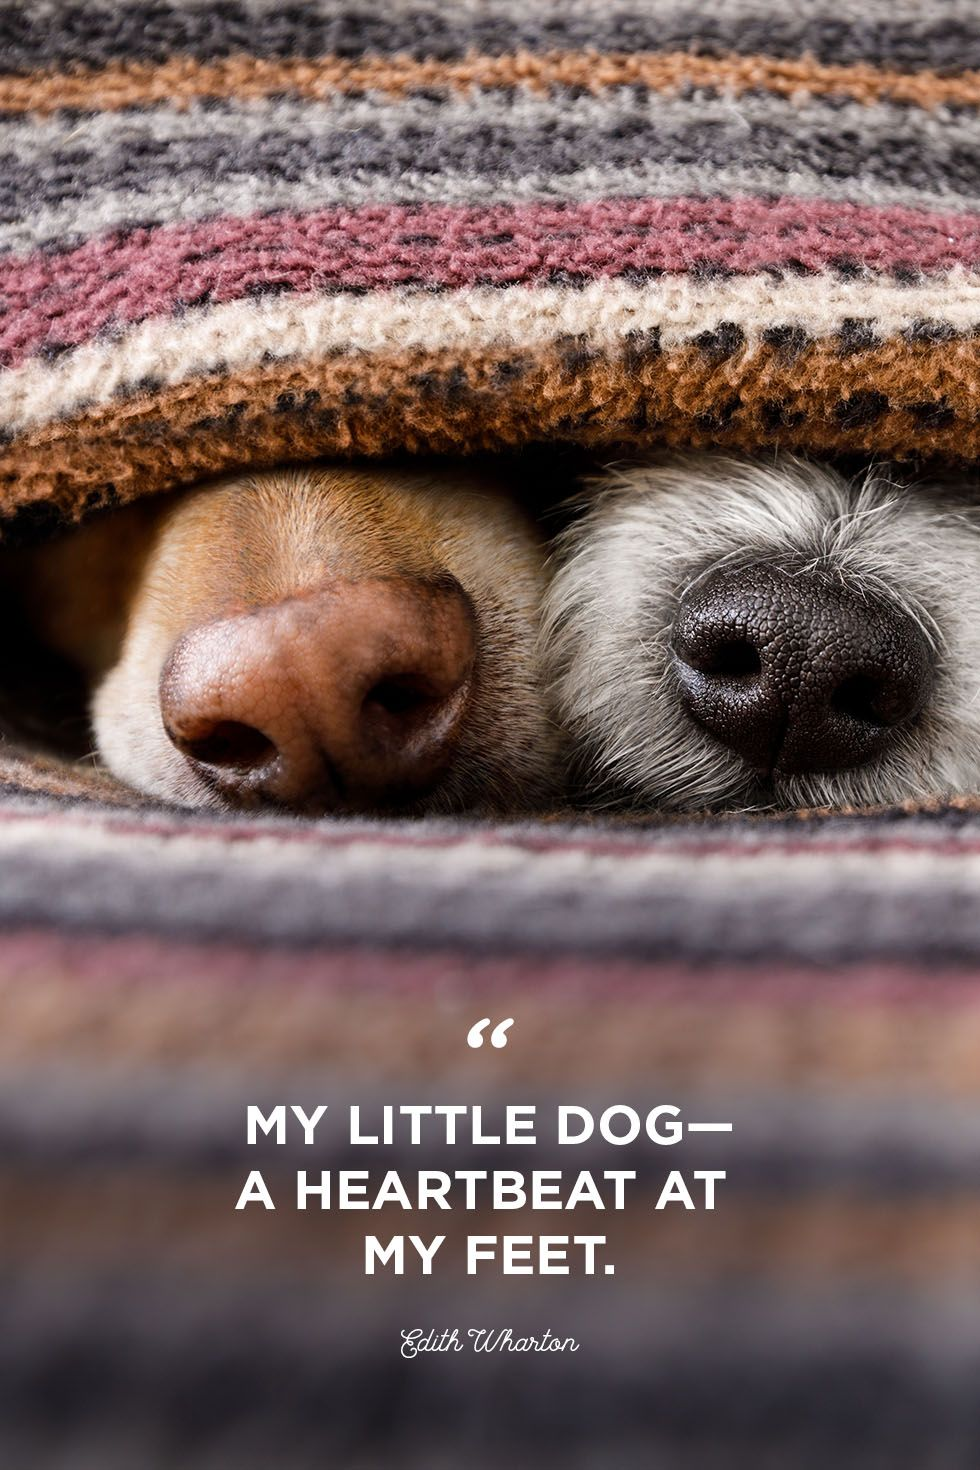 Dog Love Quotes | 30 Cute Dog Love Quotes Puppy Sayings And Dog Best Friend